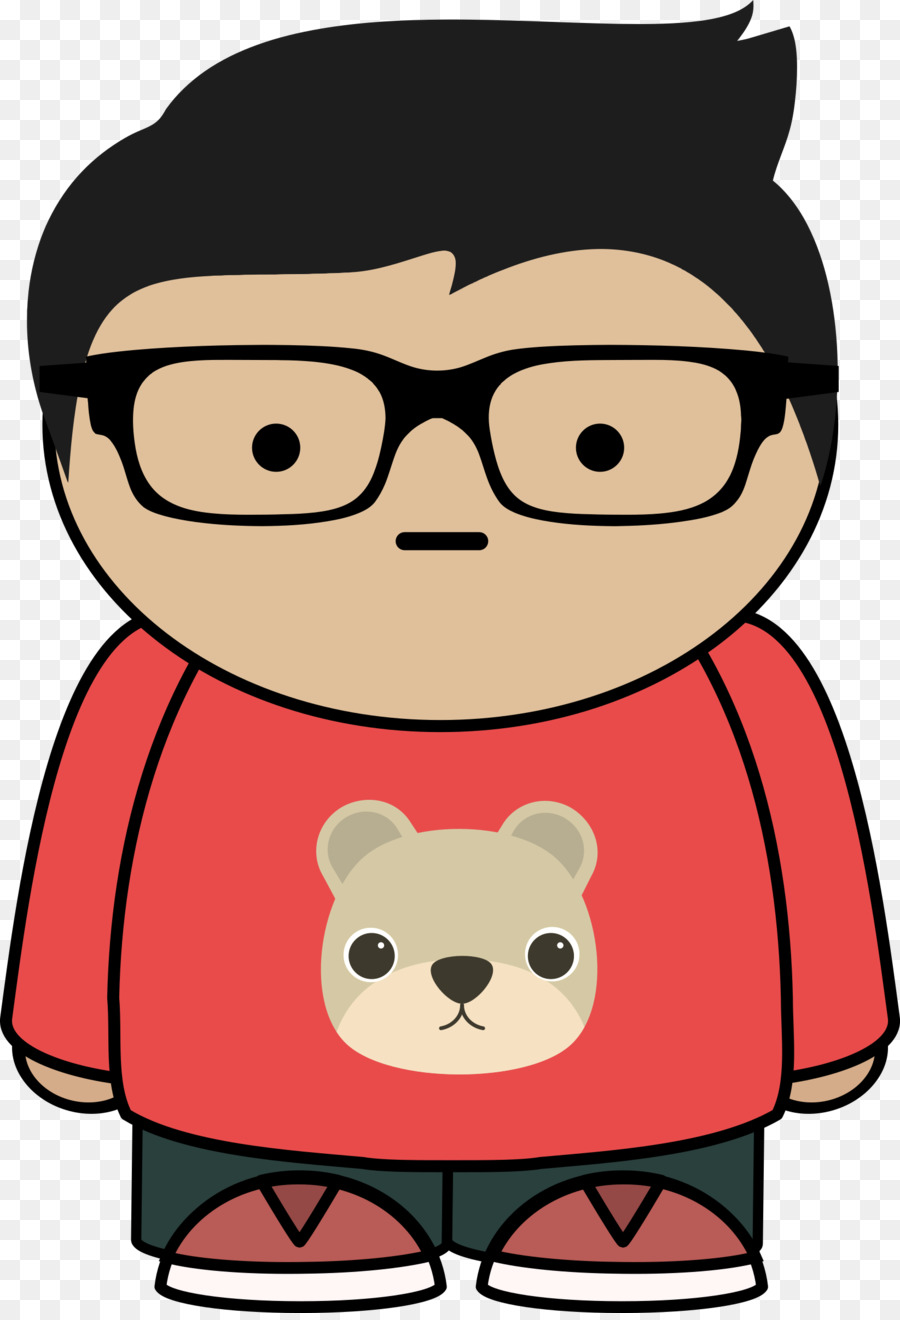 Png Boy With Glasses - Glasses Cartoon Clip art - glasses boy png download - 1645*2400 ...